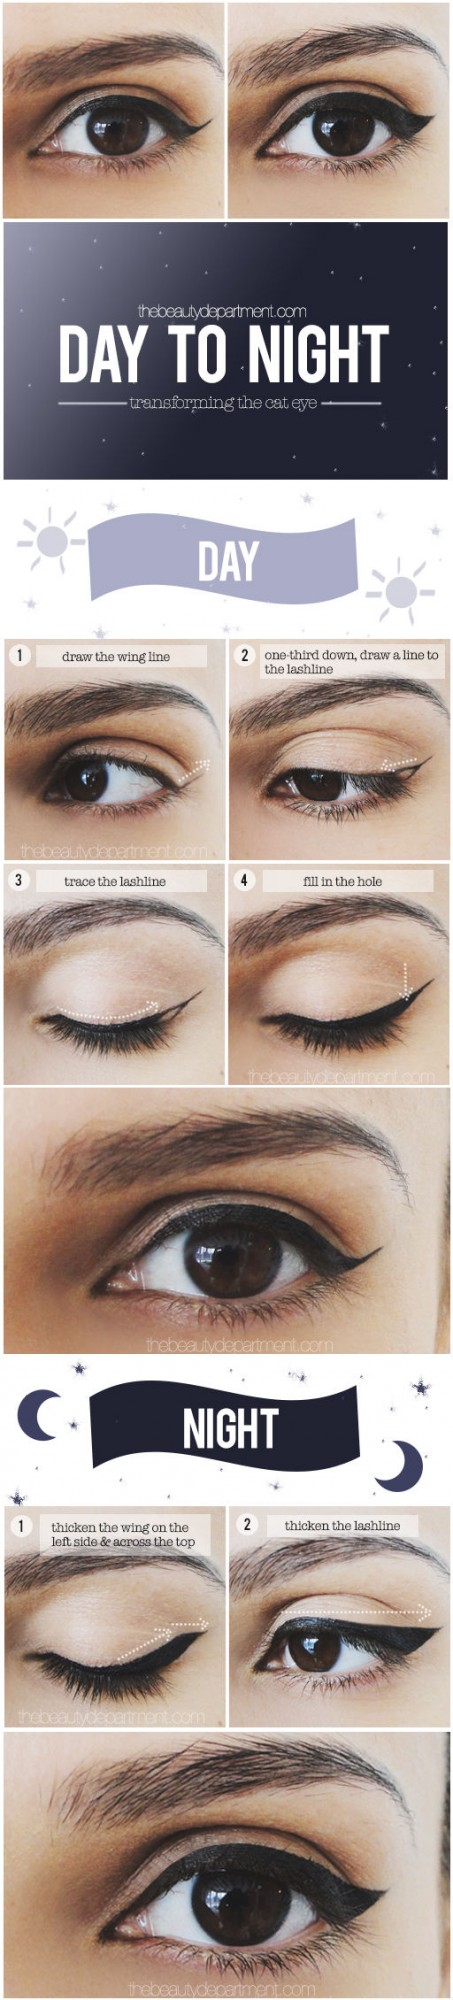 16 Makeup Tricks For Flawless Look Every Woman Should Know (6)